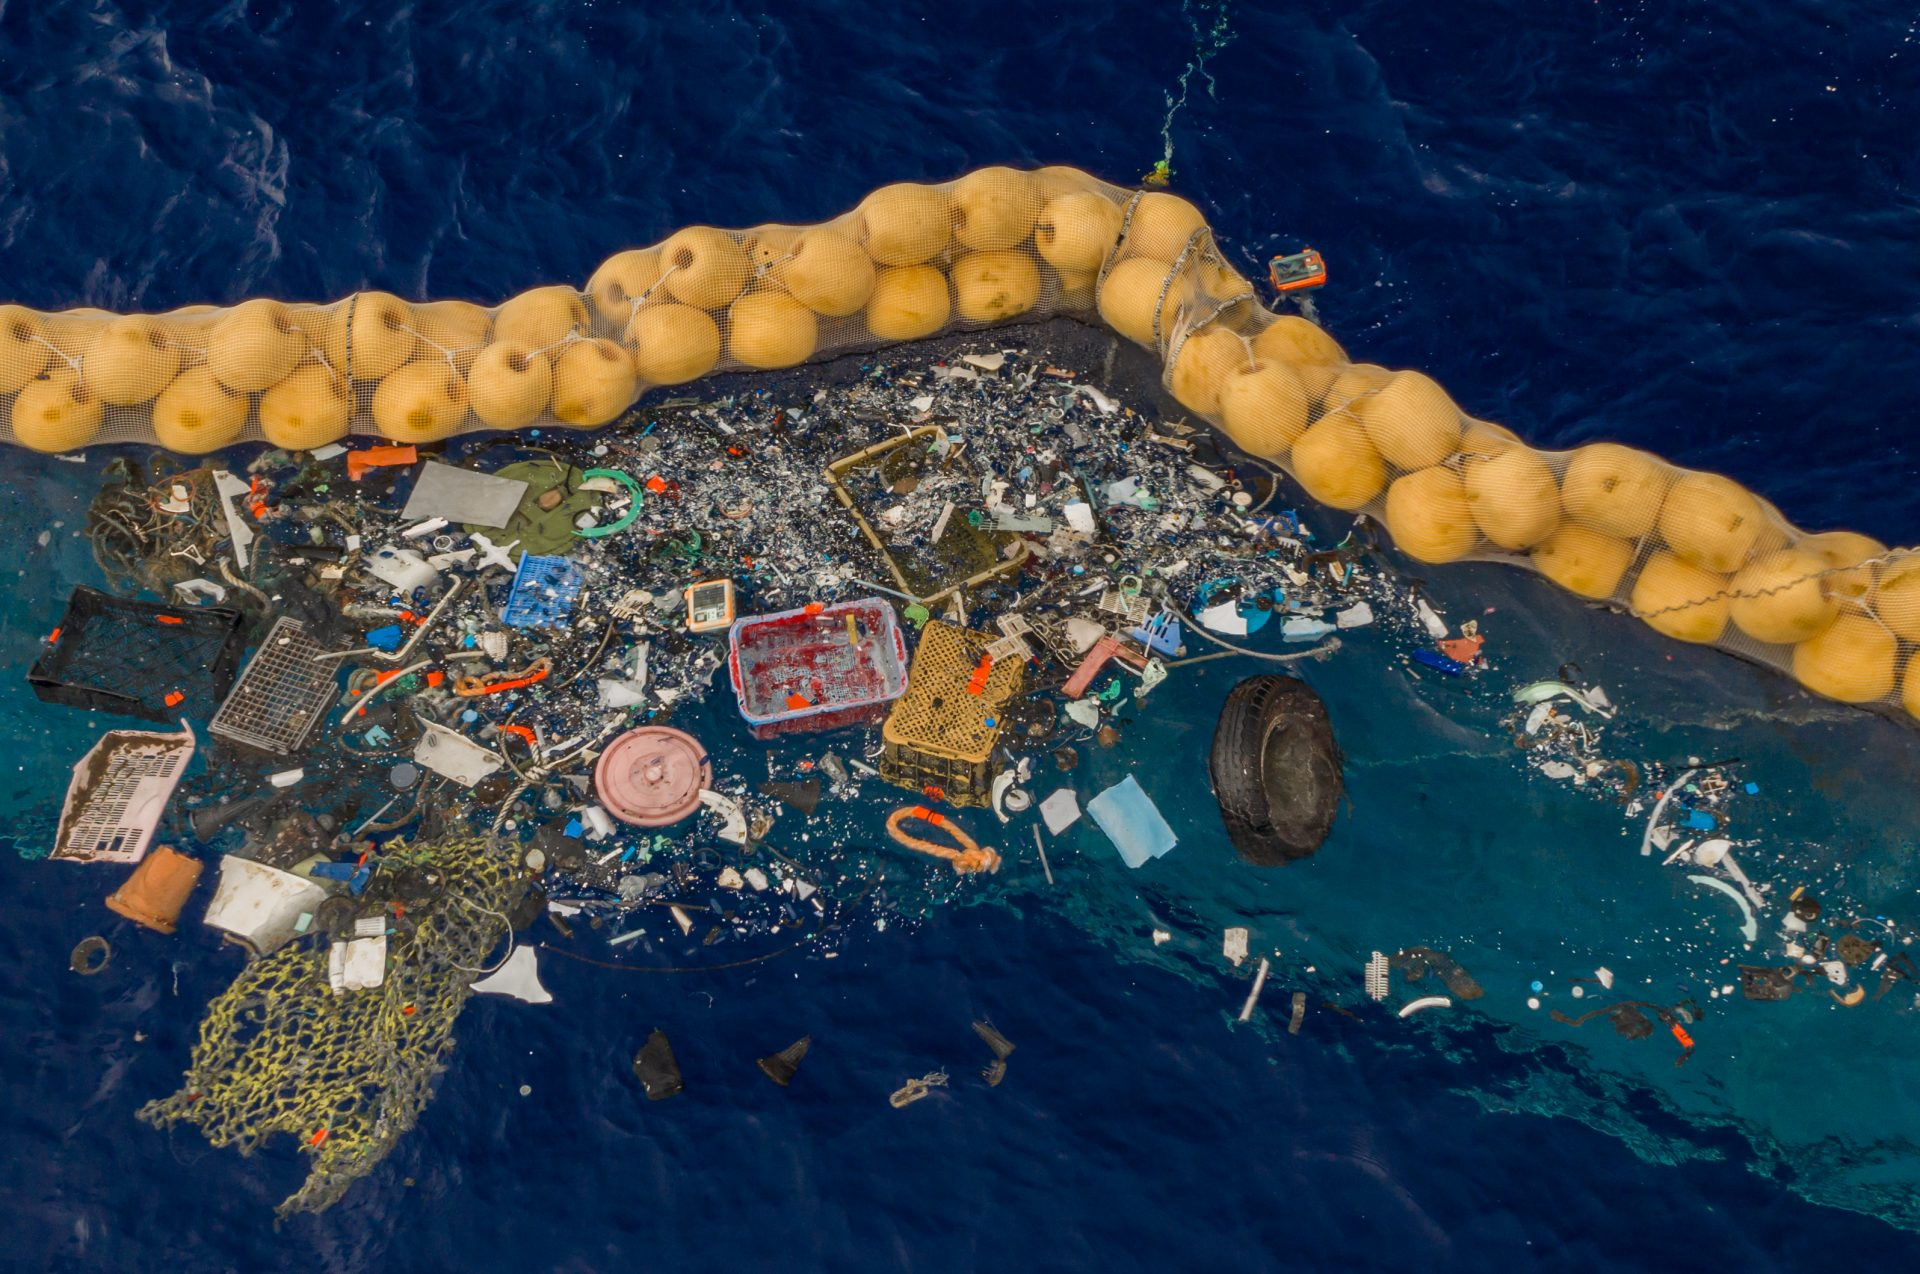 Image via The Ocean Cleanup. The project cleaned up plastic as well as a wheel.